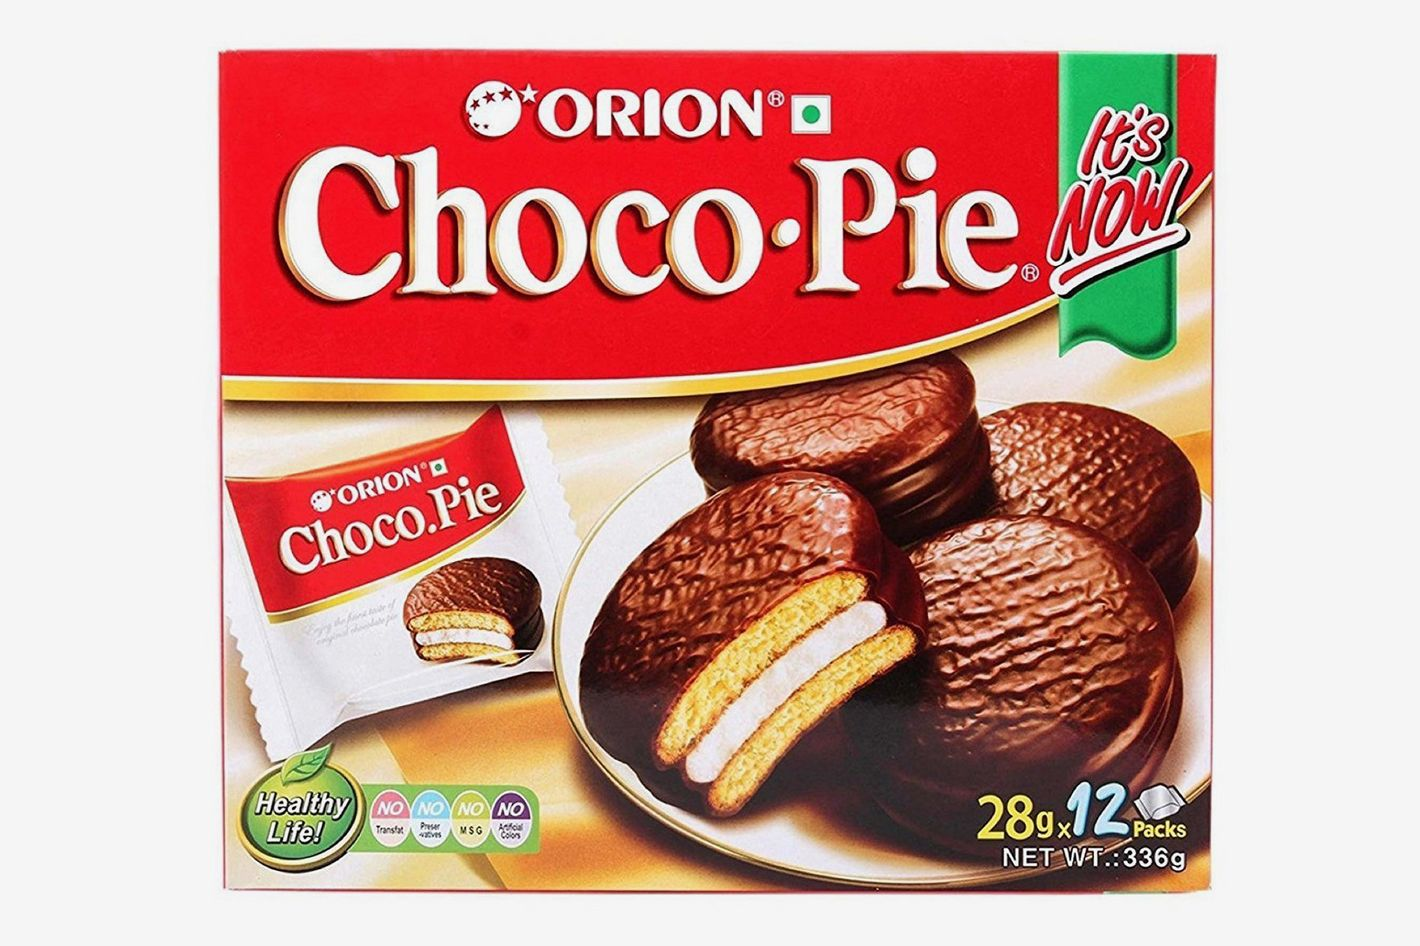 Orion Choco Pie, Two Boxes